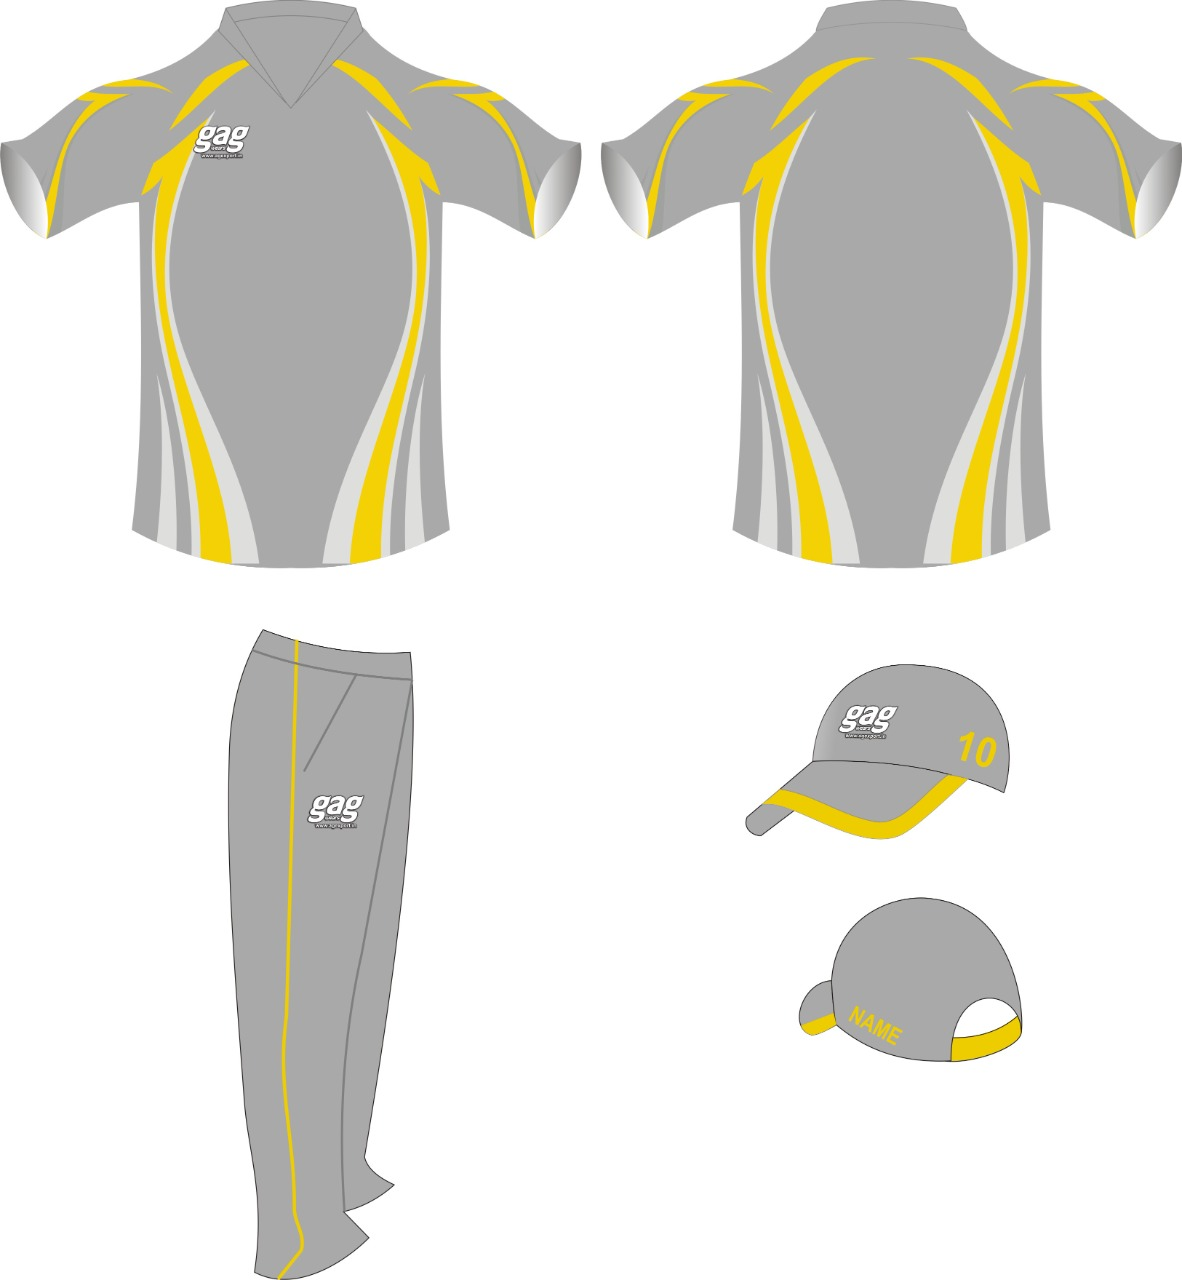 Cricket Tshirt Manufacturers in Jalandhar in Austria